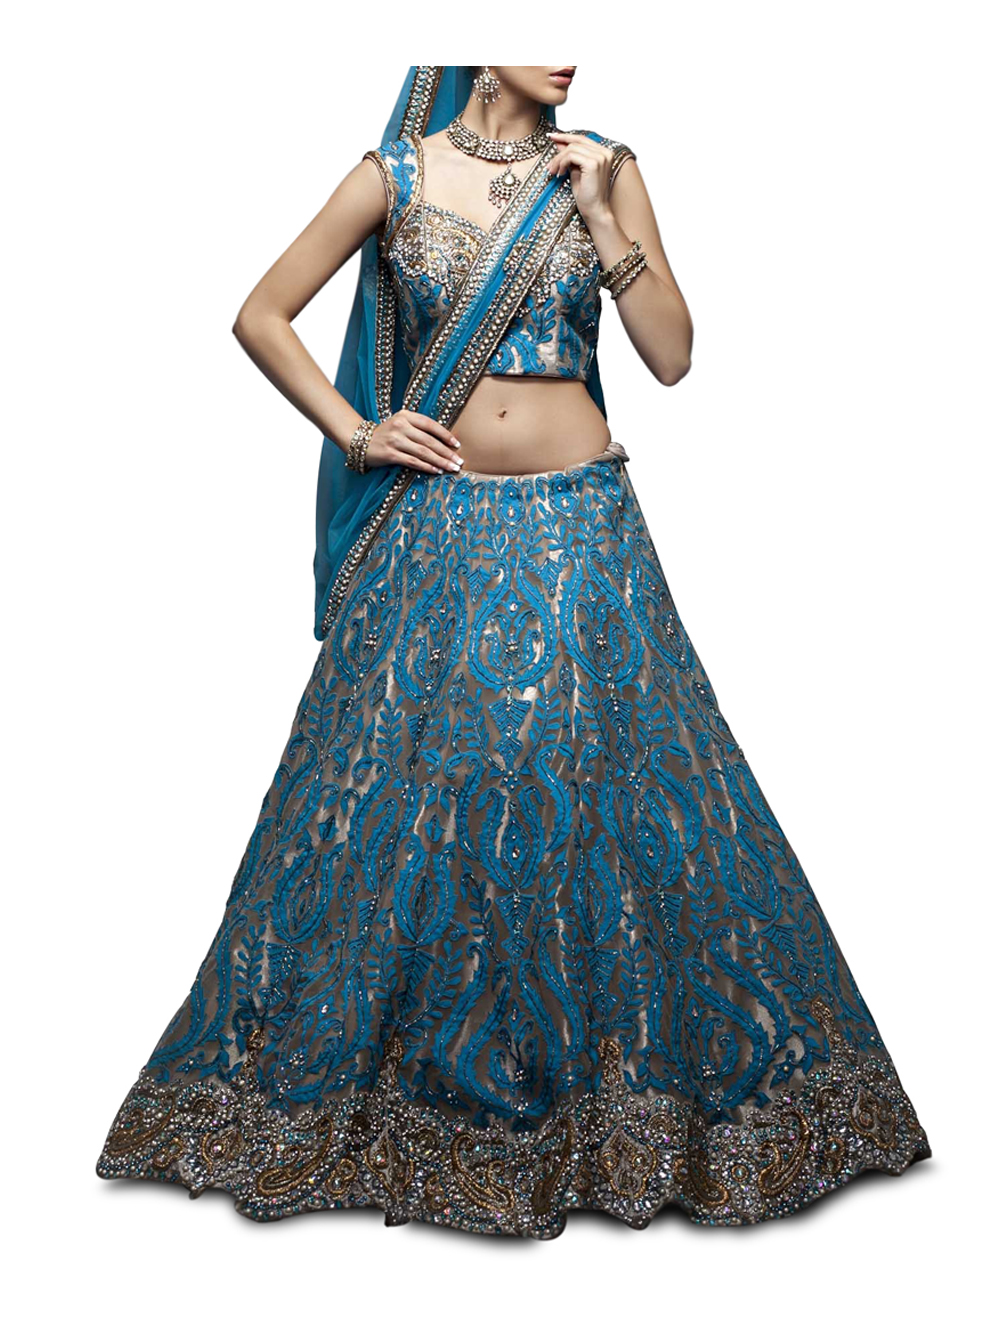 Elegant Indian Clothing & Wedding Outfits: Zarilane Announces Summer ...